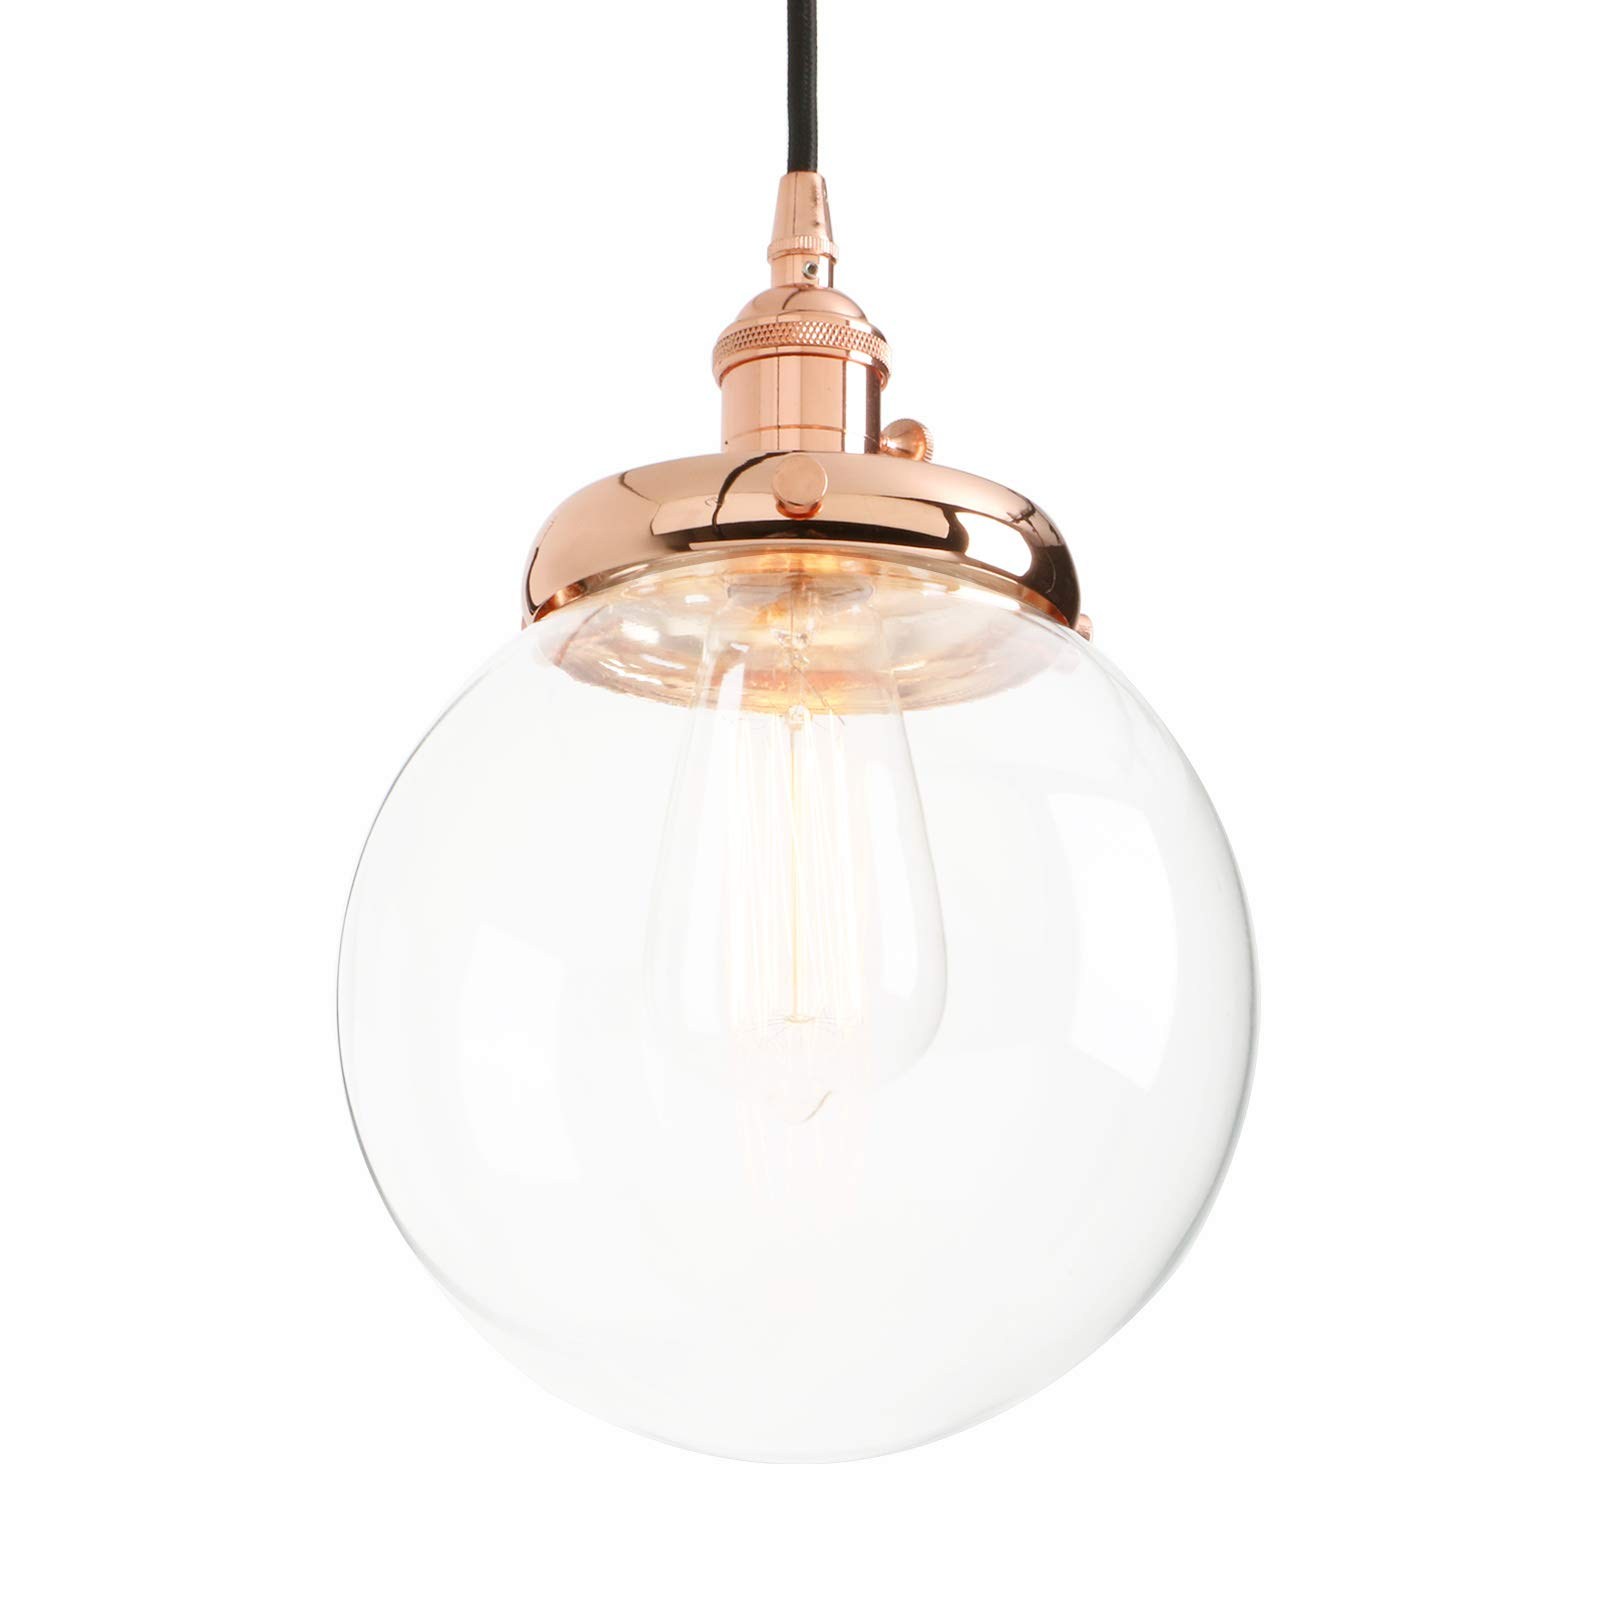 Phansthy Vintage Industrial Pendant Light Retro Warehouse Light Fixture E26 Globe Clear Glass Shade Hanging Light Lamp for Loft Kitchen Coffee Bar by Phansthy